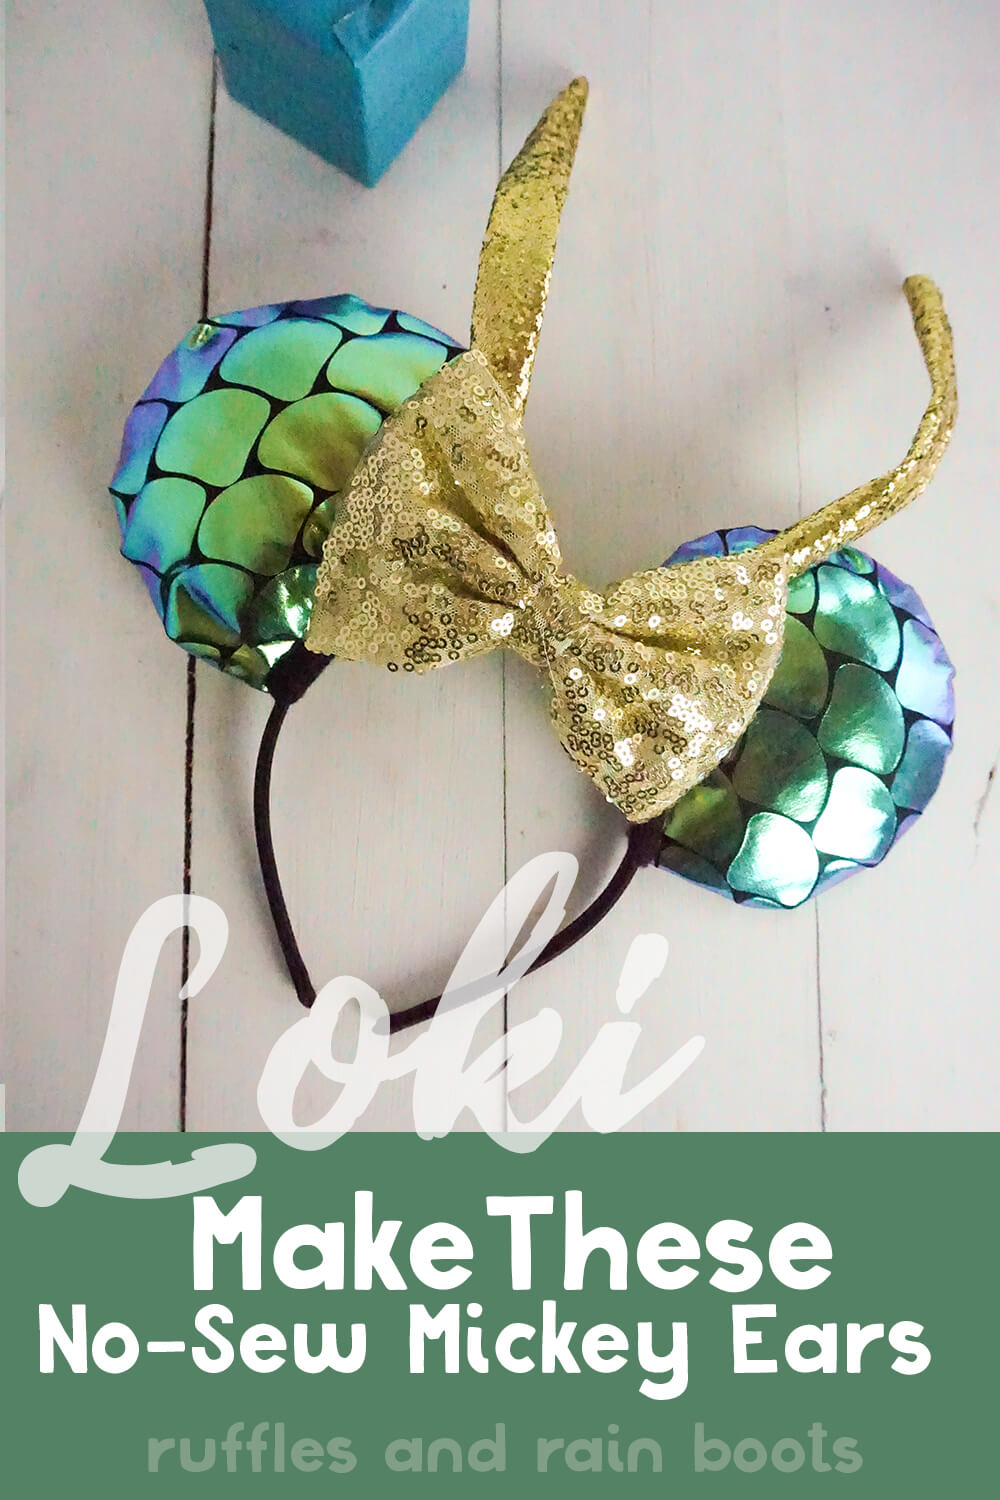 no sew mickey ears loki inspired on a white wood table with text which reads loki make these no-sew mickey ears